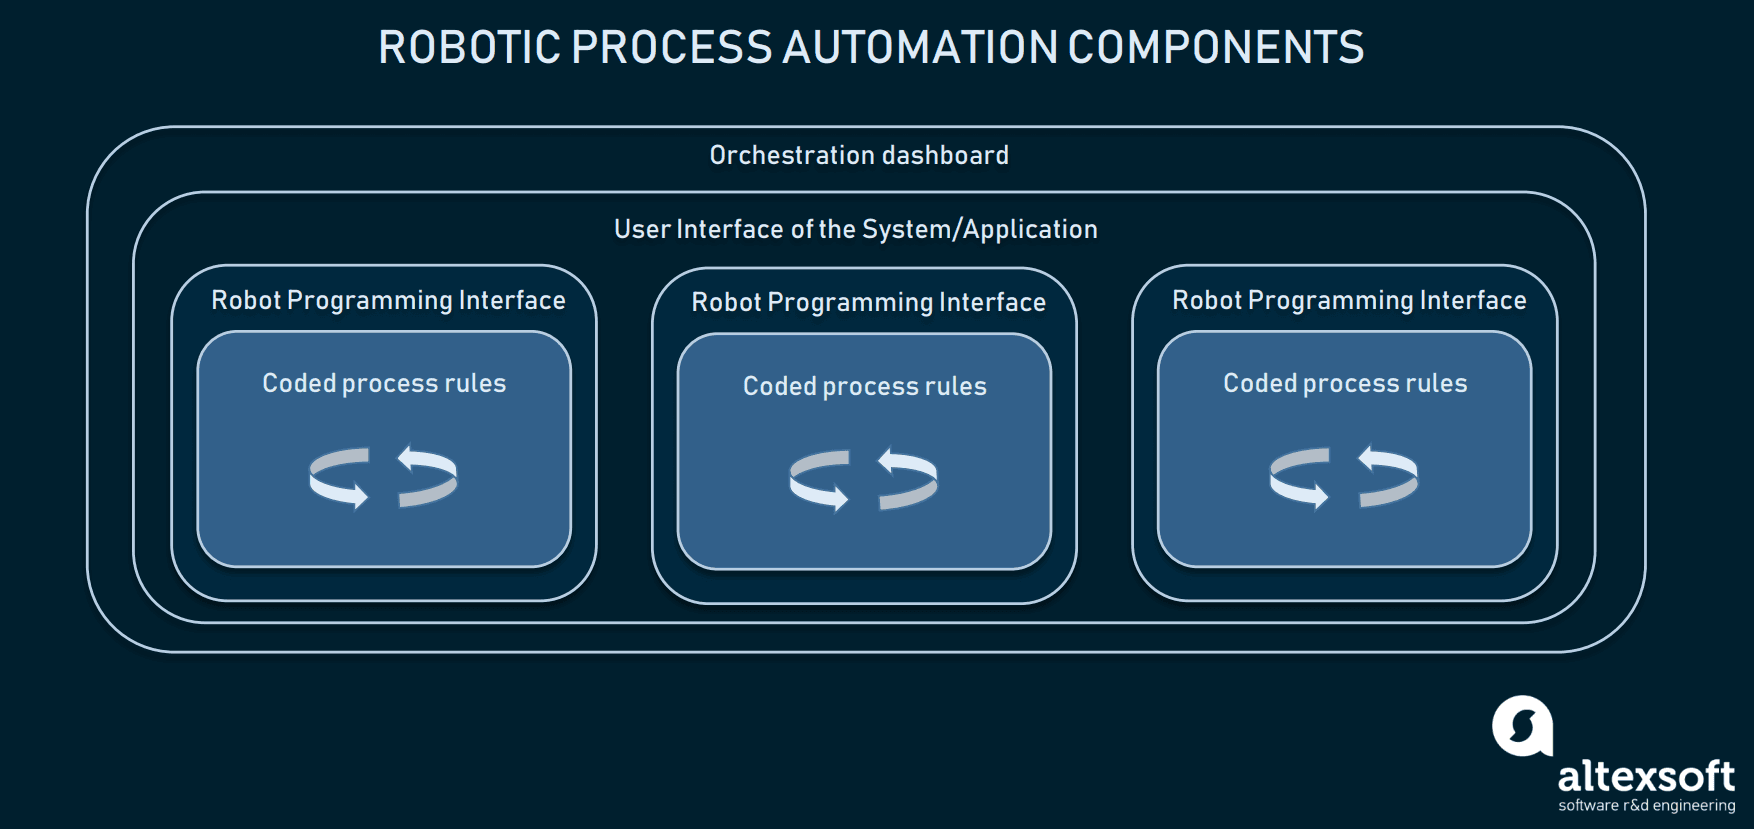 Components of RPA system